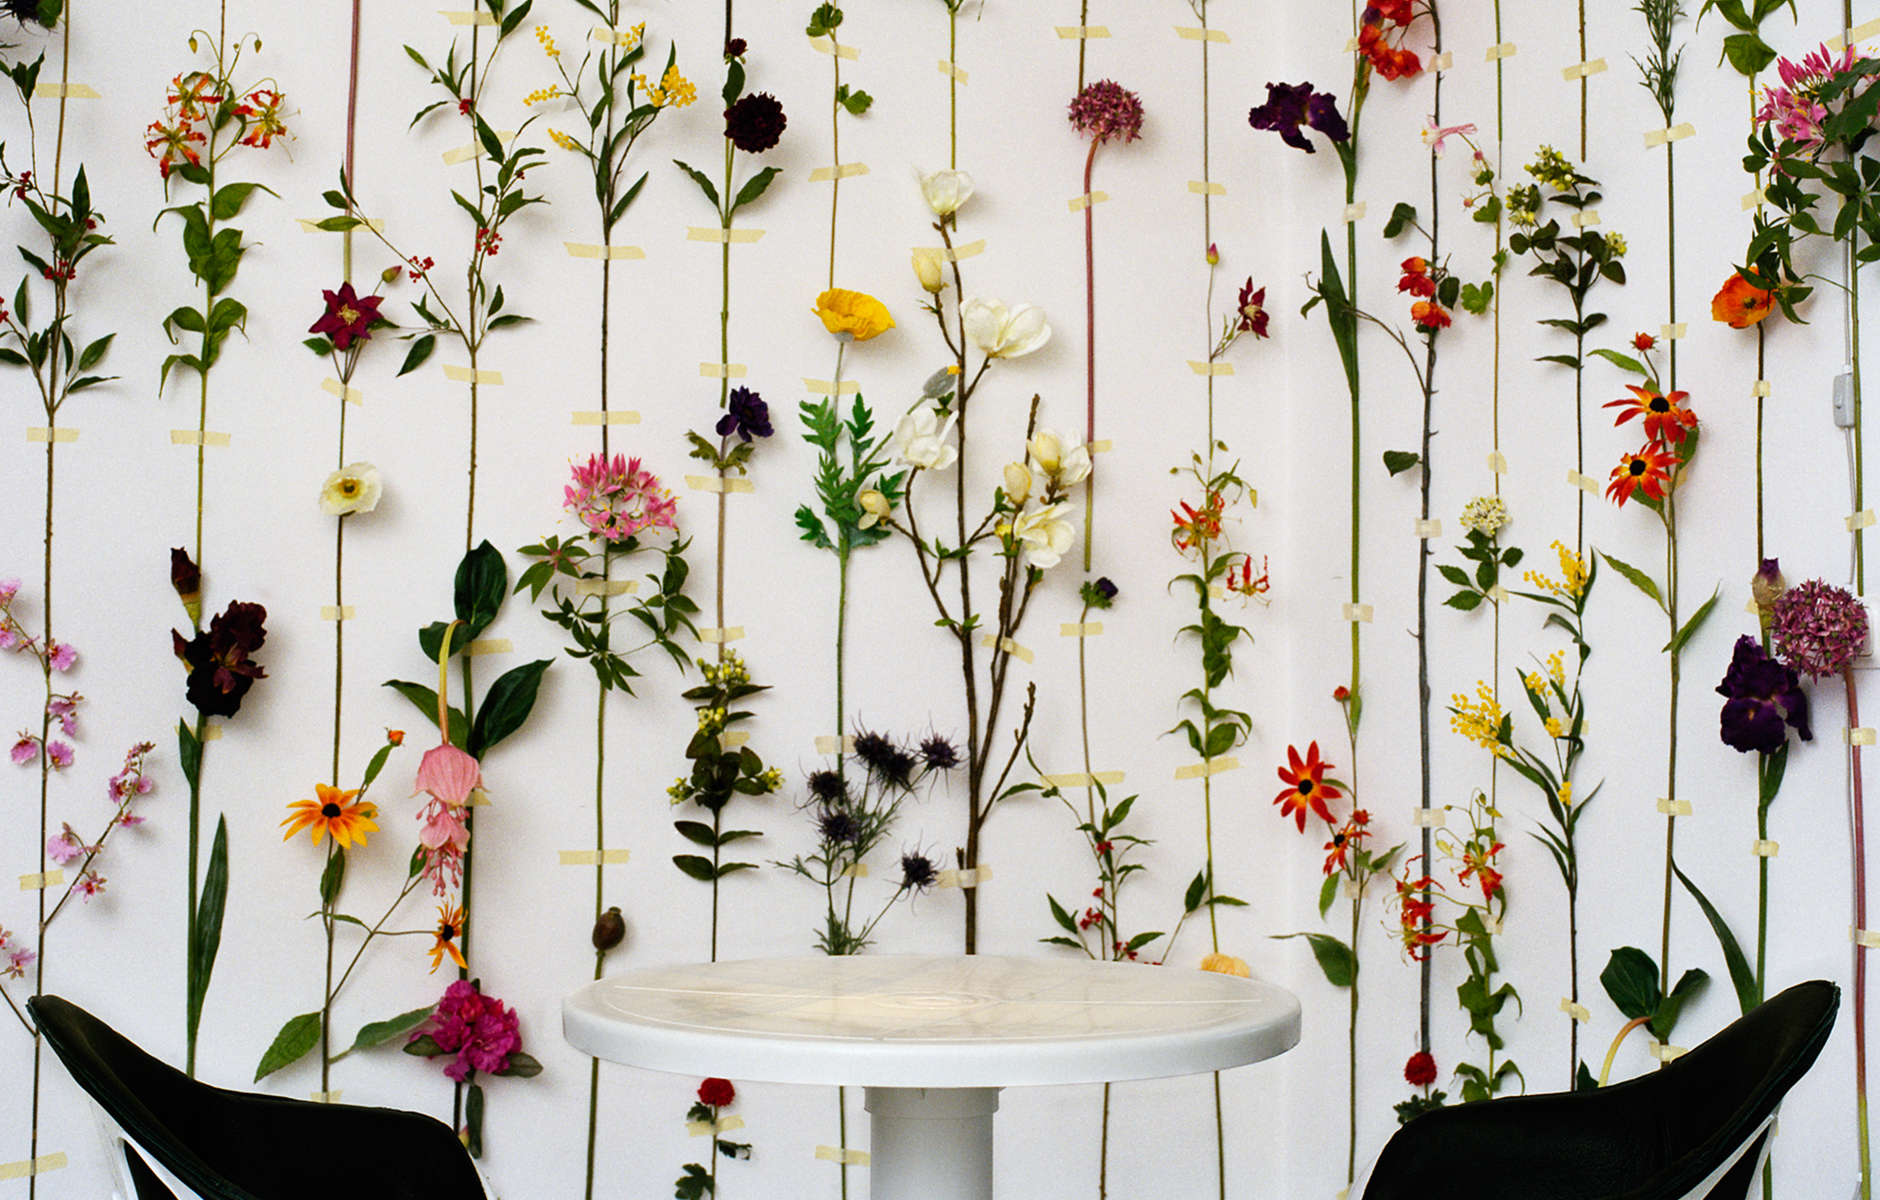 Summery - Flowerful; Creative use of flowers as wall decoration in Tensa Konsthall